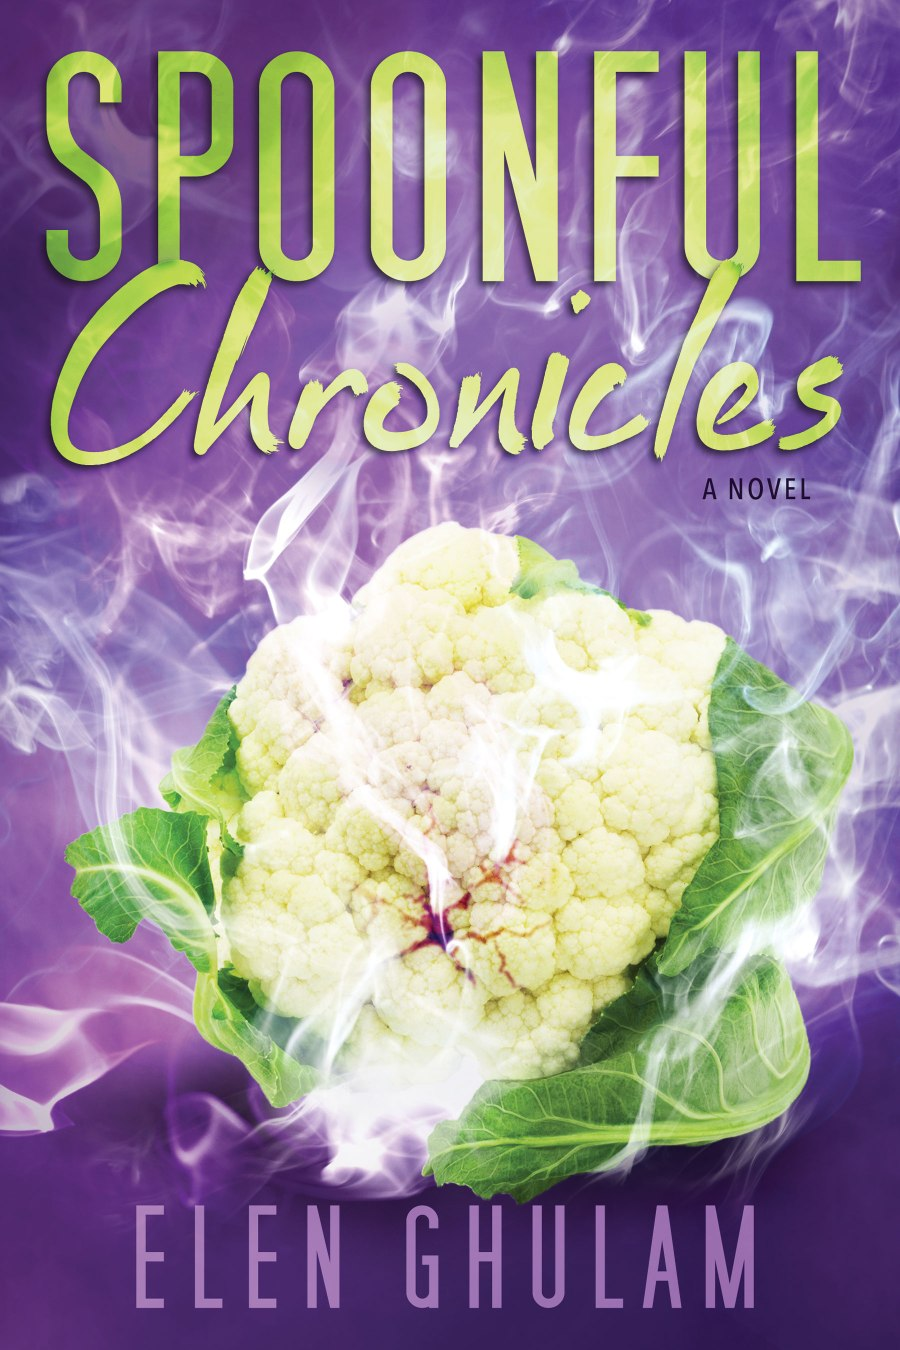 spoonfulchronicles-ghulam-ebook